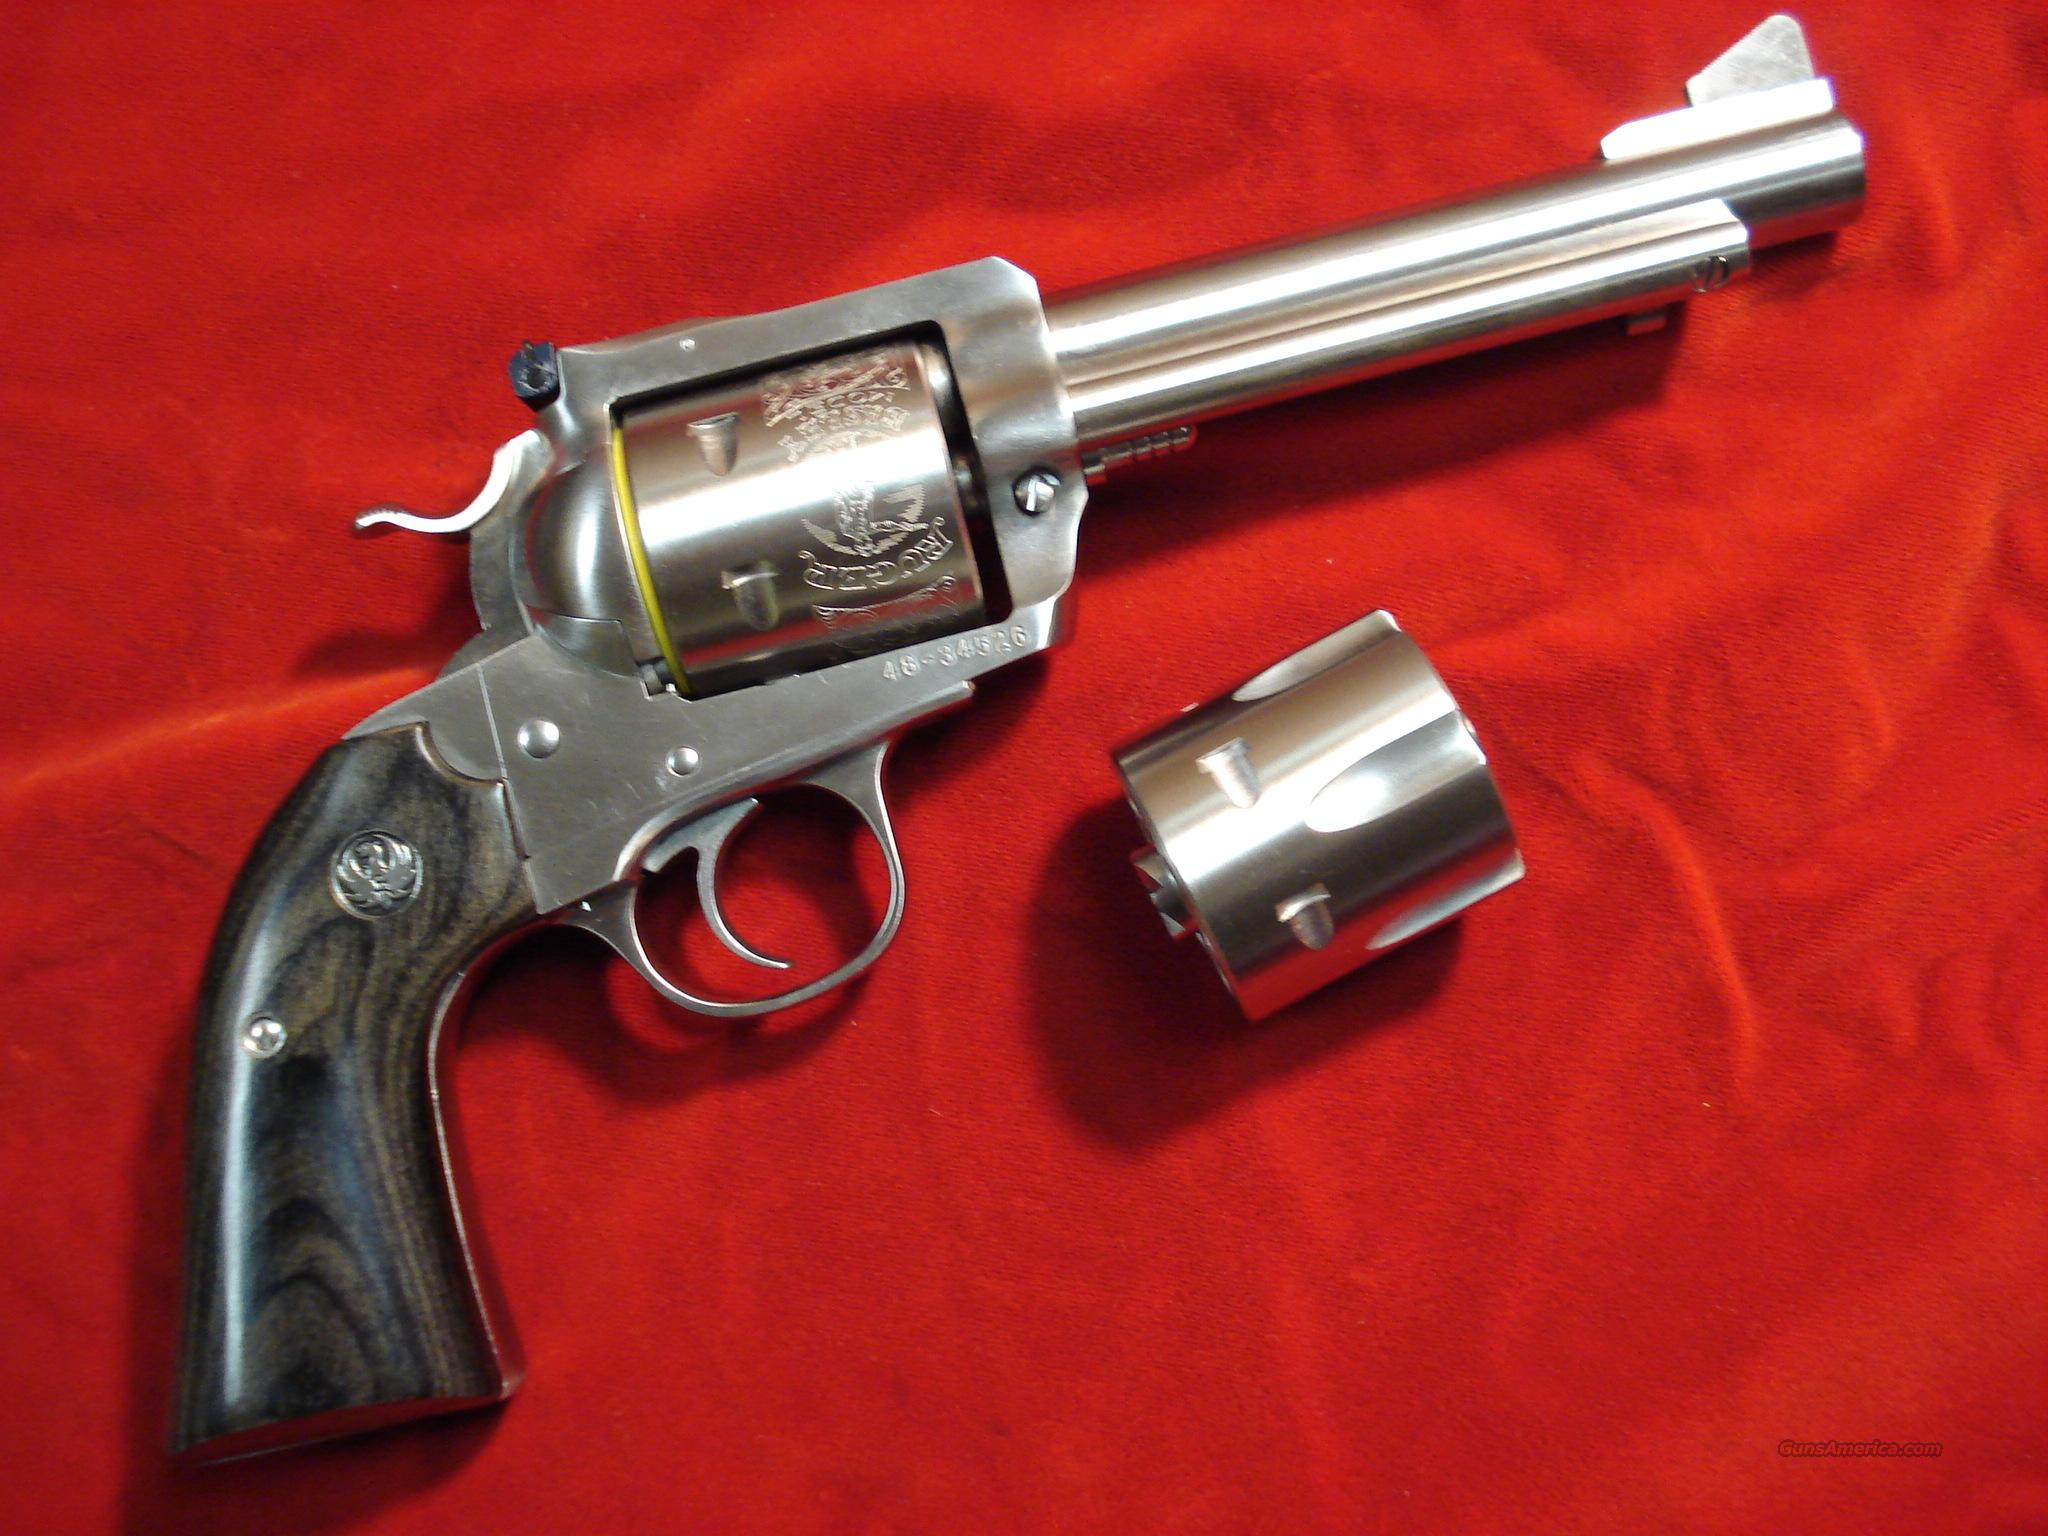 "RUGER BISLEY BLACKHAWK STAINLESS 45ACP/45COLT CONVERTABLE 5.5"" BARREL W/ADJUSTABLE SIGHTS   Guns > Pistols > Ruger Single Action Revolvers > Blackhawk Type"